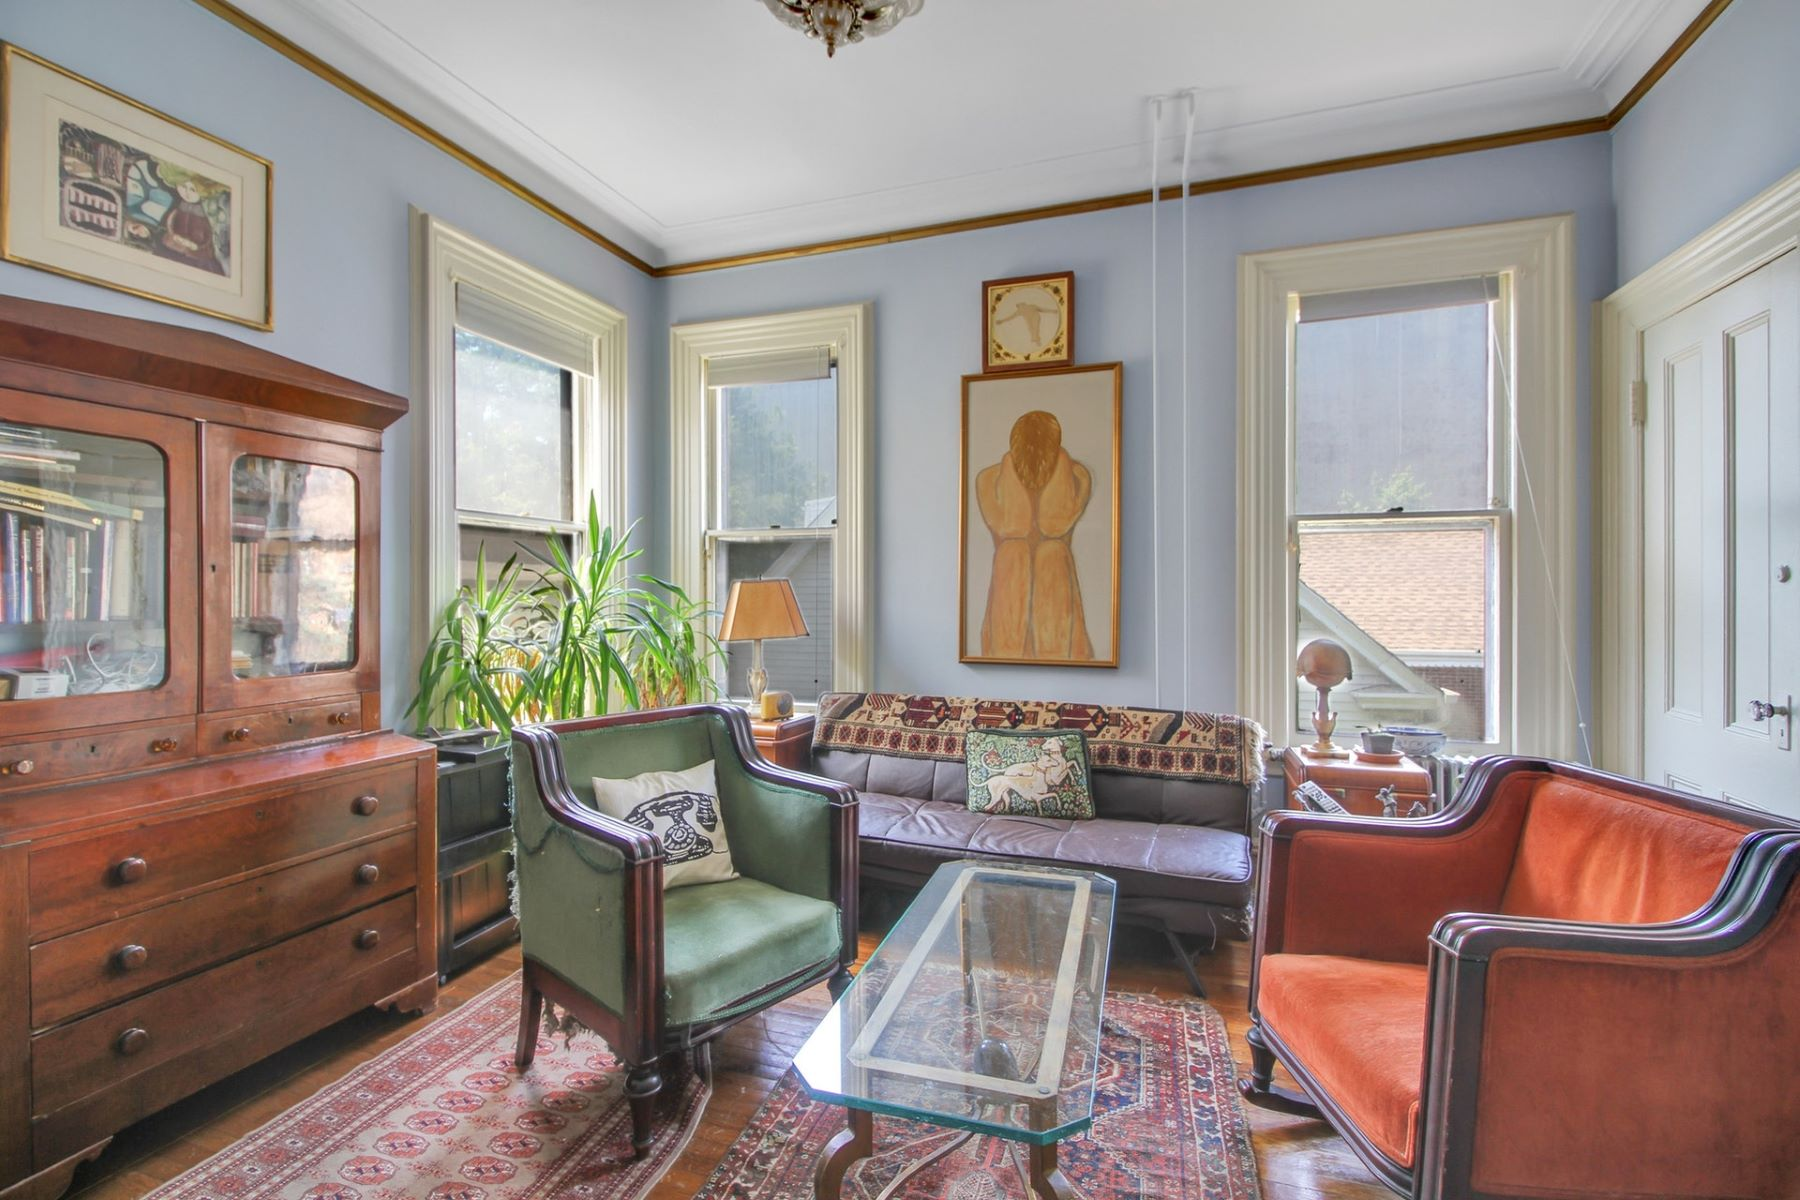 Additional photo for property listing at Grand Victorian Mansion 7 Kensington Ave, Jersey City, New Jersey 07304 Stati Uniti